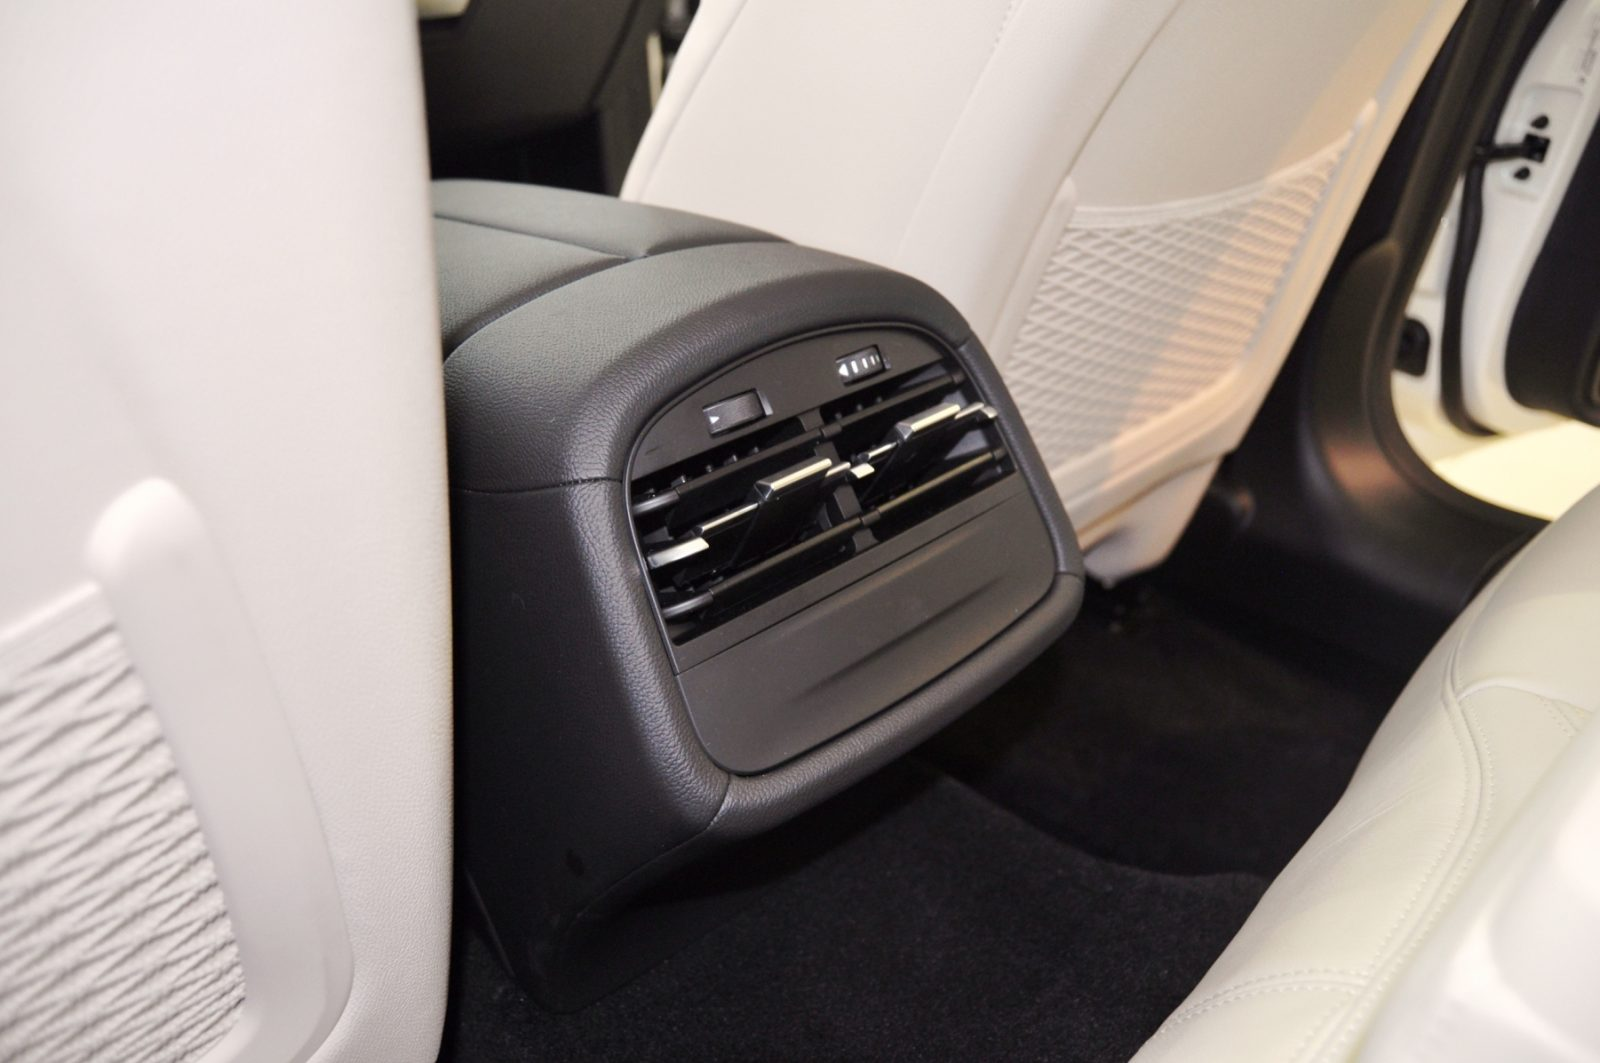 2014 Maserati Ghibli Q4 -- Interior Feels Luxe and High-Quality, But Back Seat A Bit Tight 7